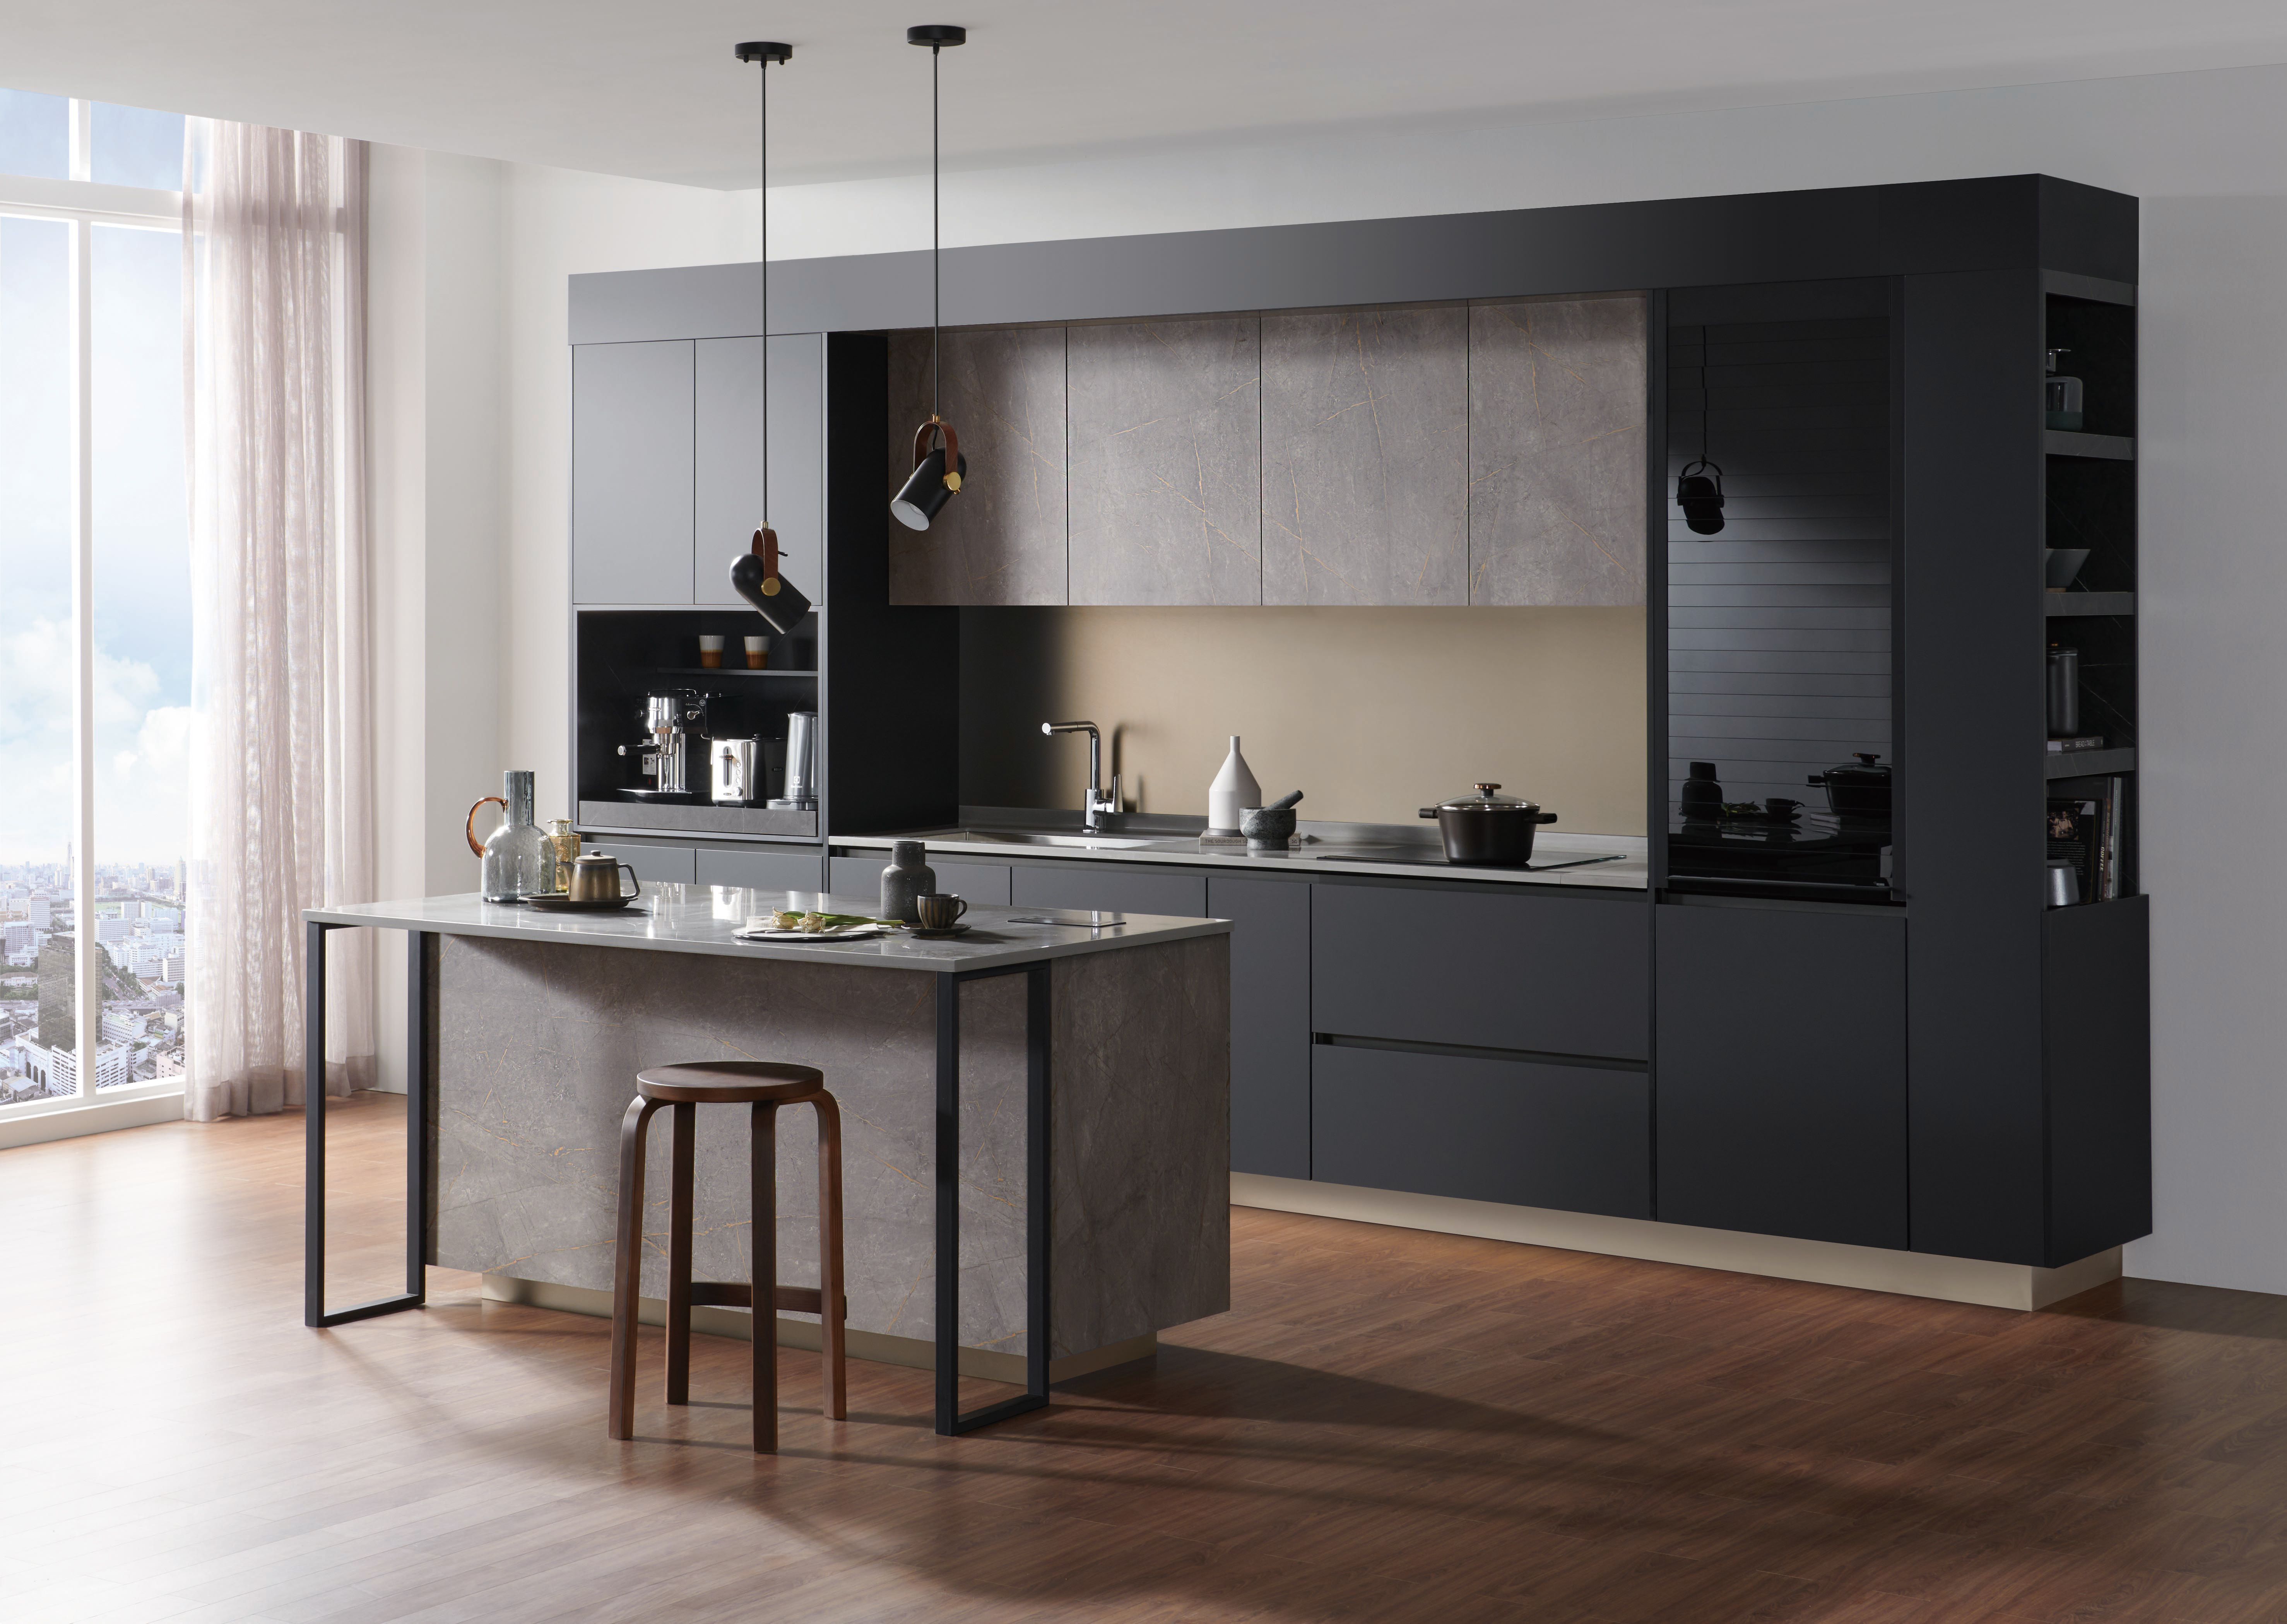 Combine The New Rauvisio Noir With Our Contemporary Tambour Door For The Perfect Kitchen Look In 2020 Custom Cabinet Doors Contemporary Cabinets Modern Spaces